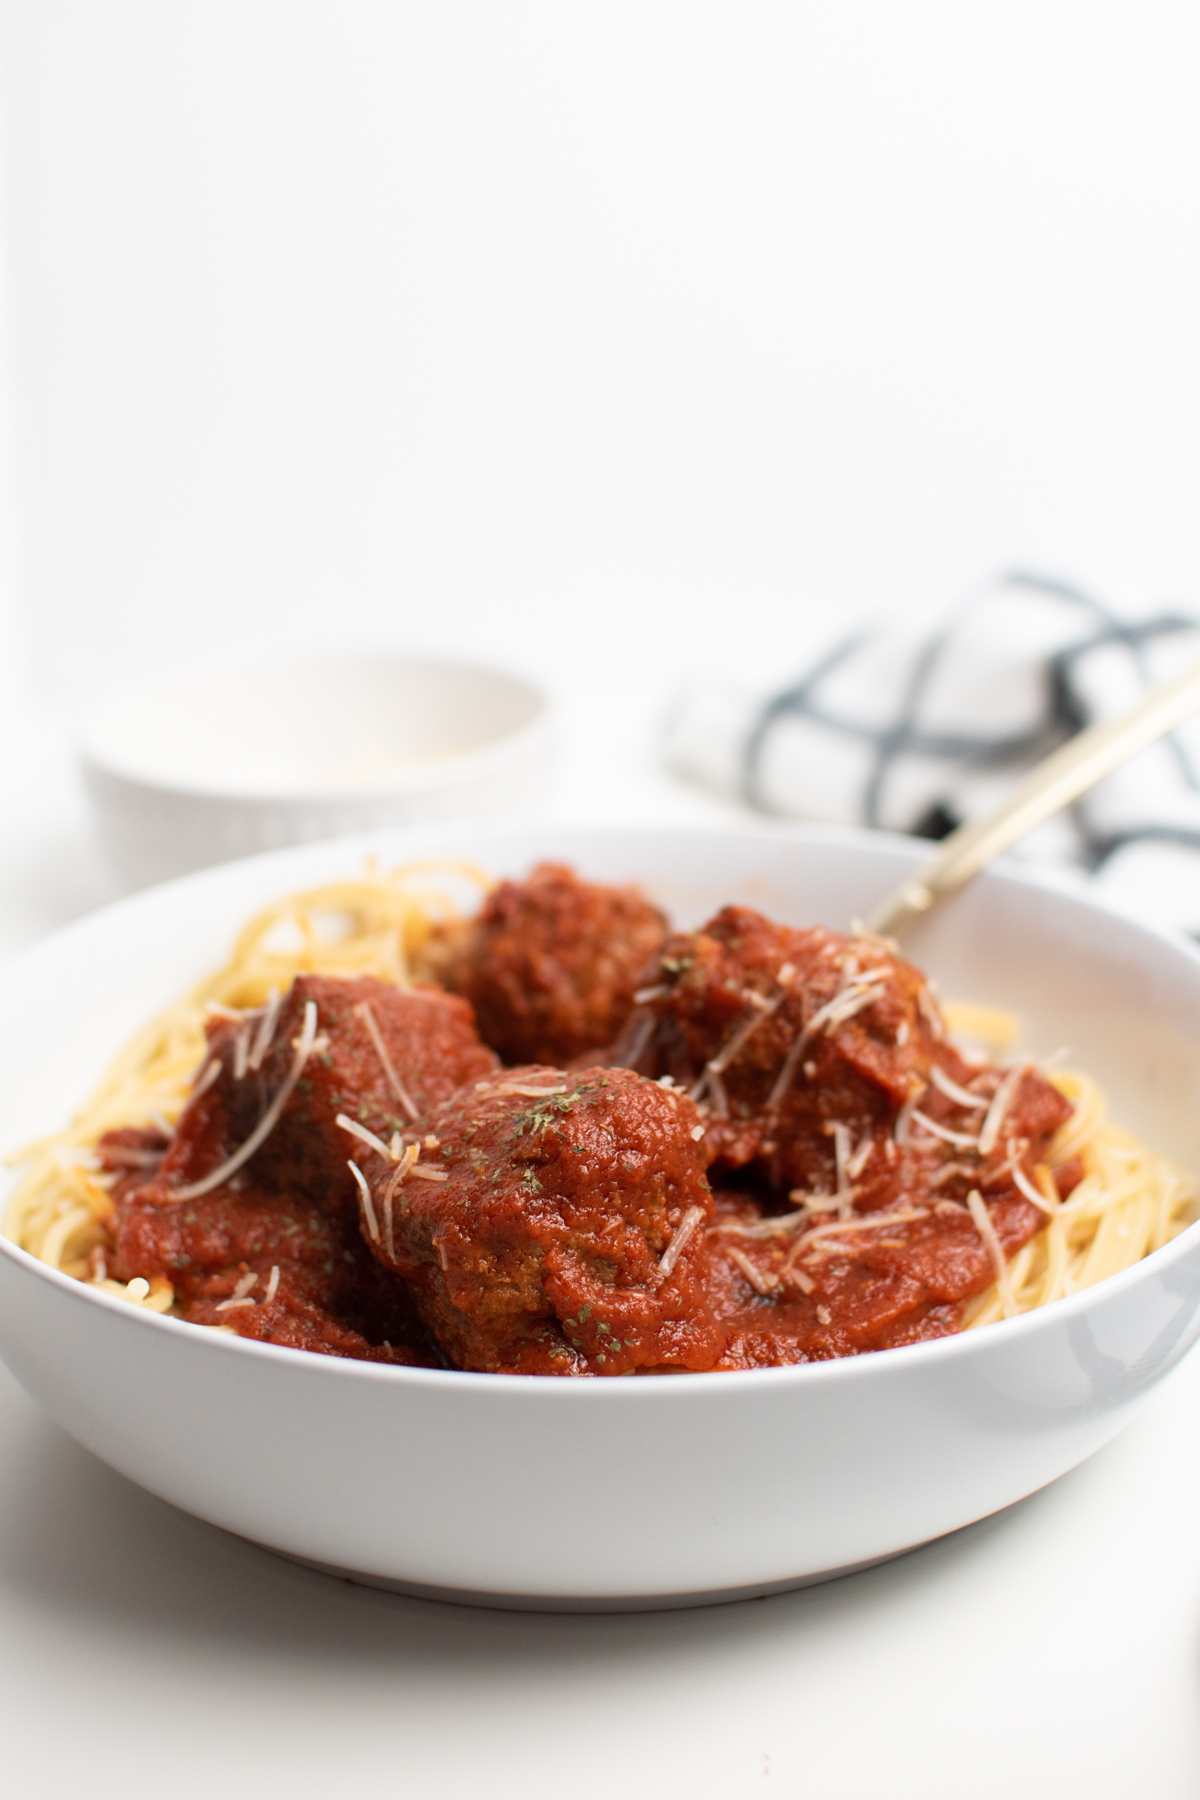 Spaghetti and meatballs in a white bowl on white table.